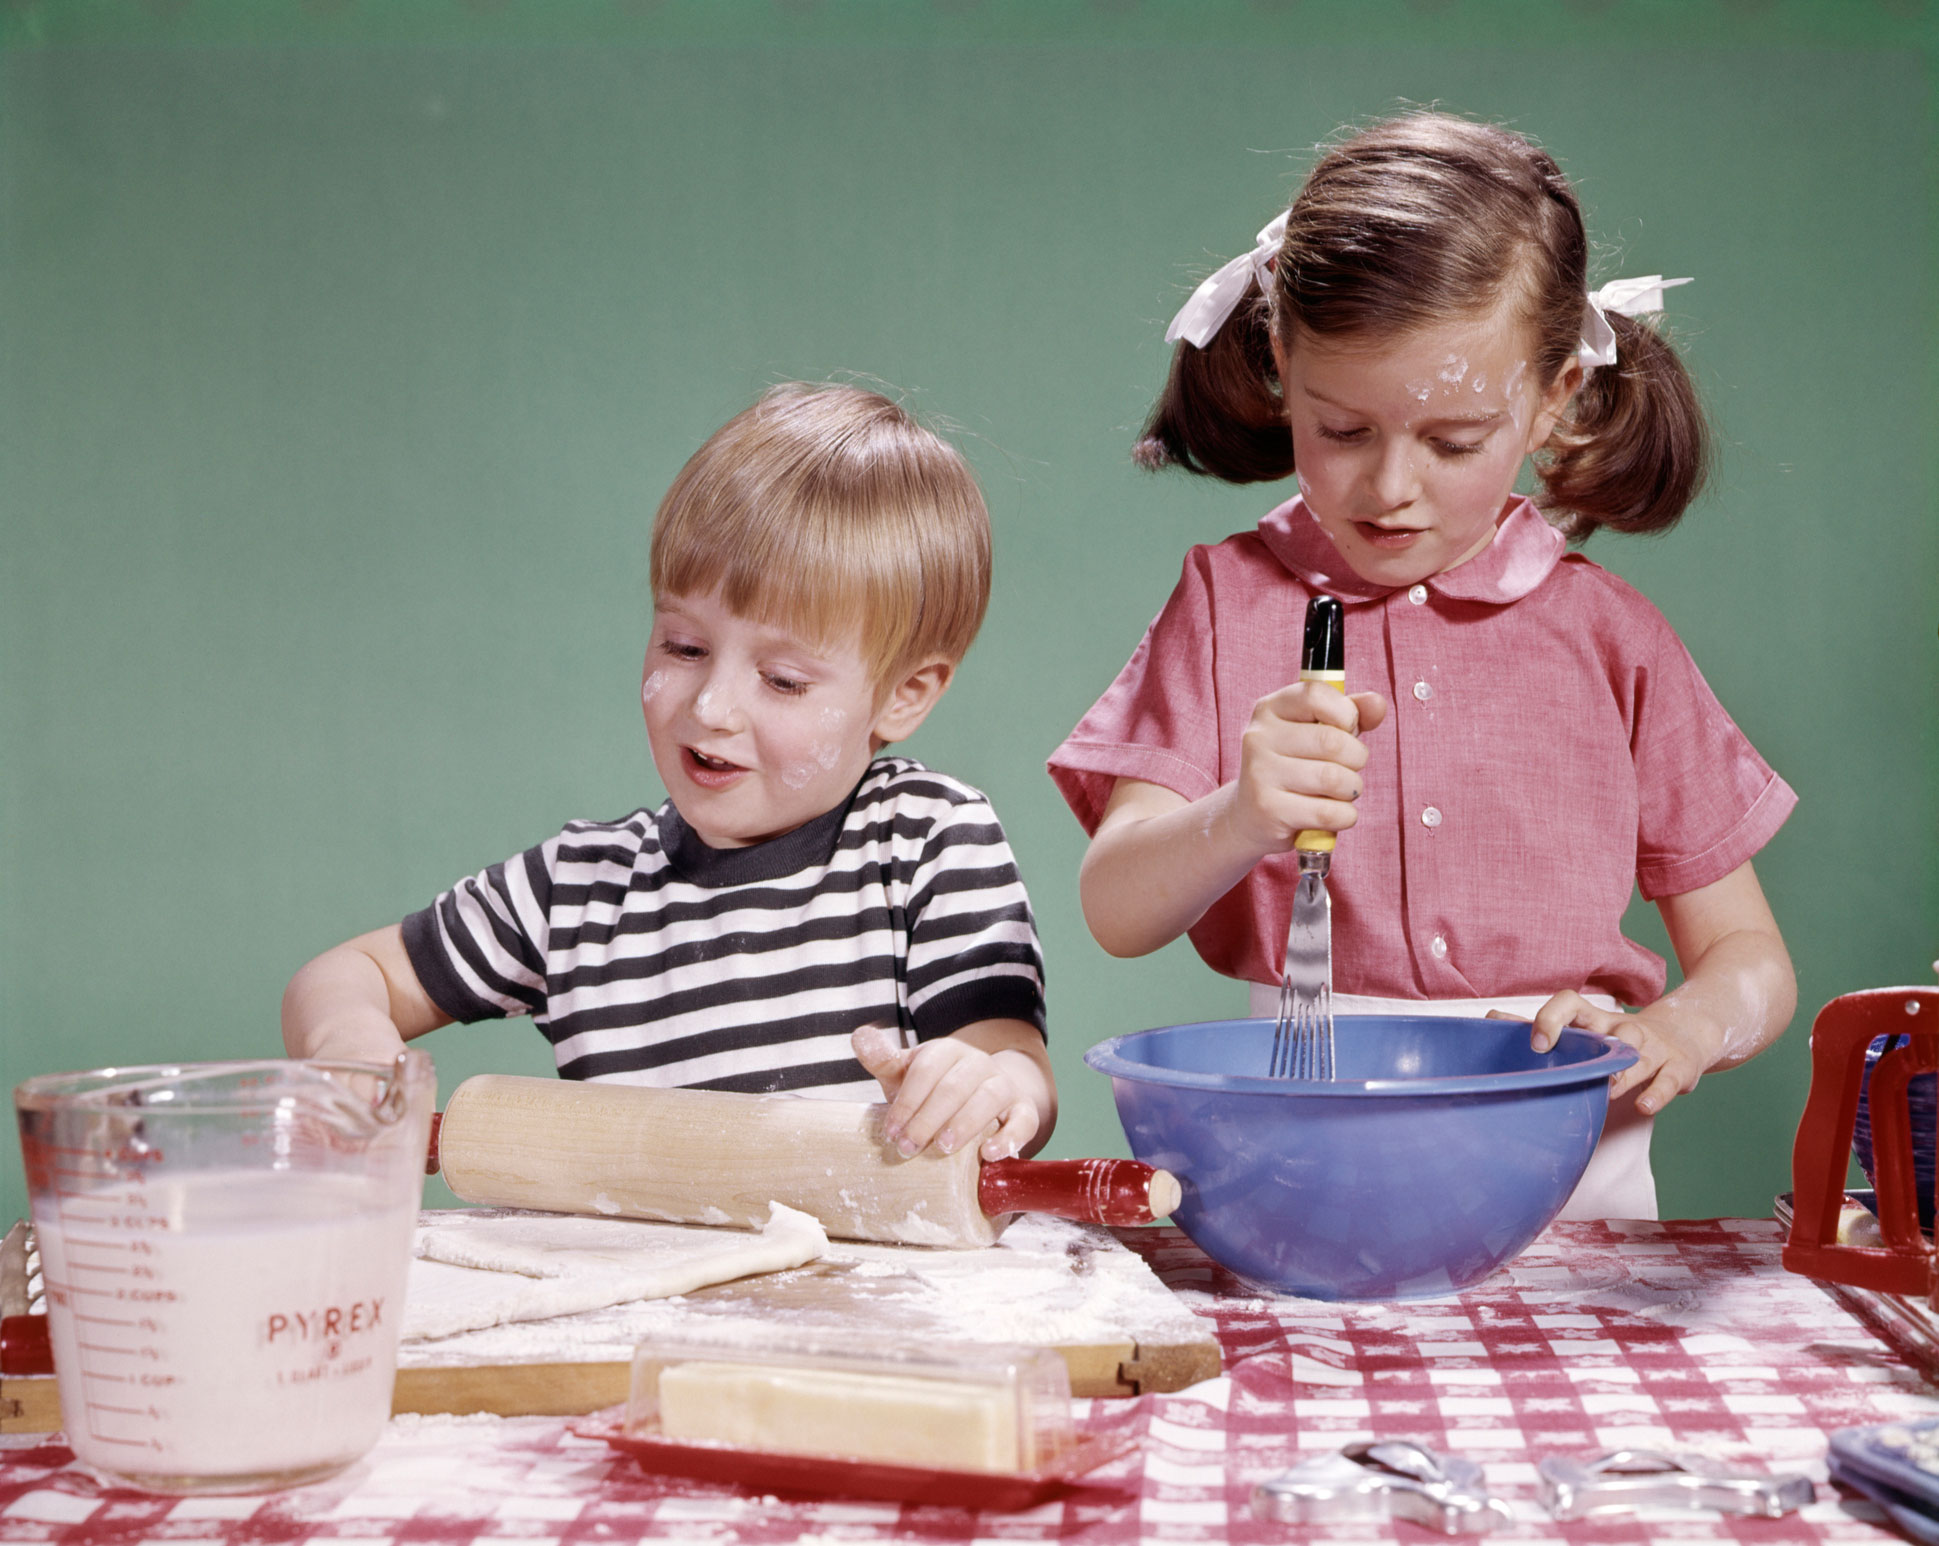 Vintage Boy and Girl Baking with Butter.jpg